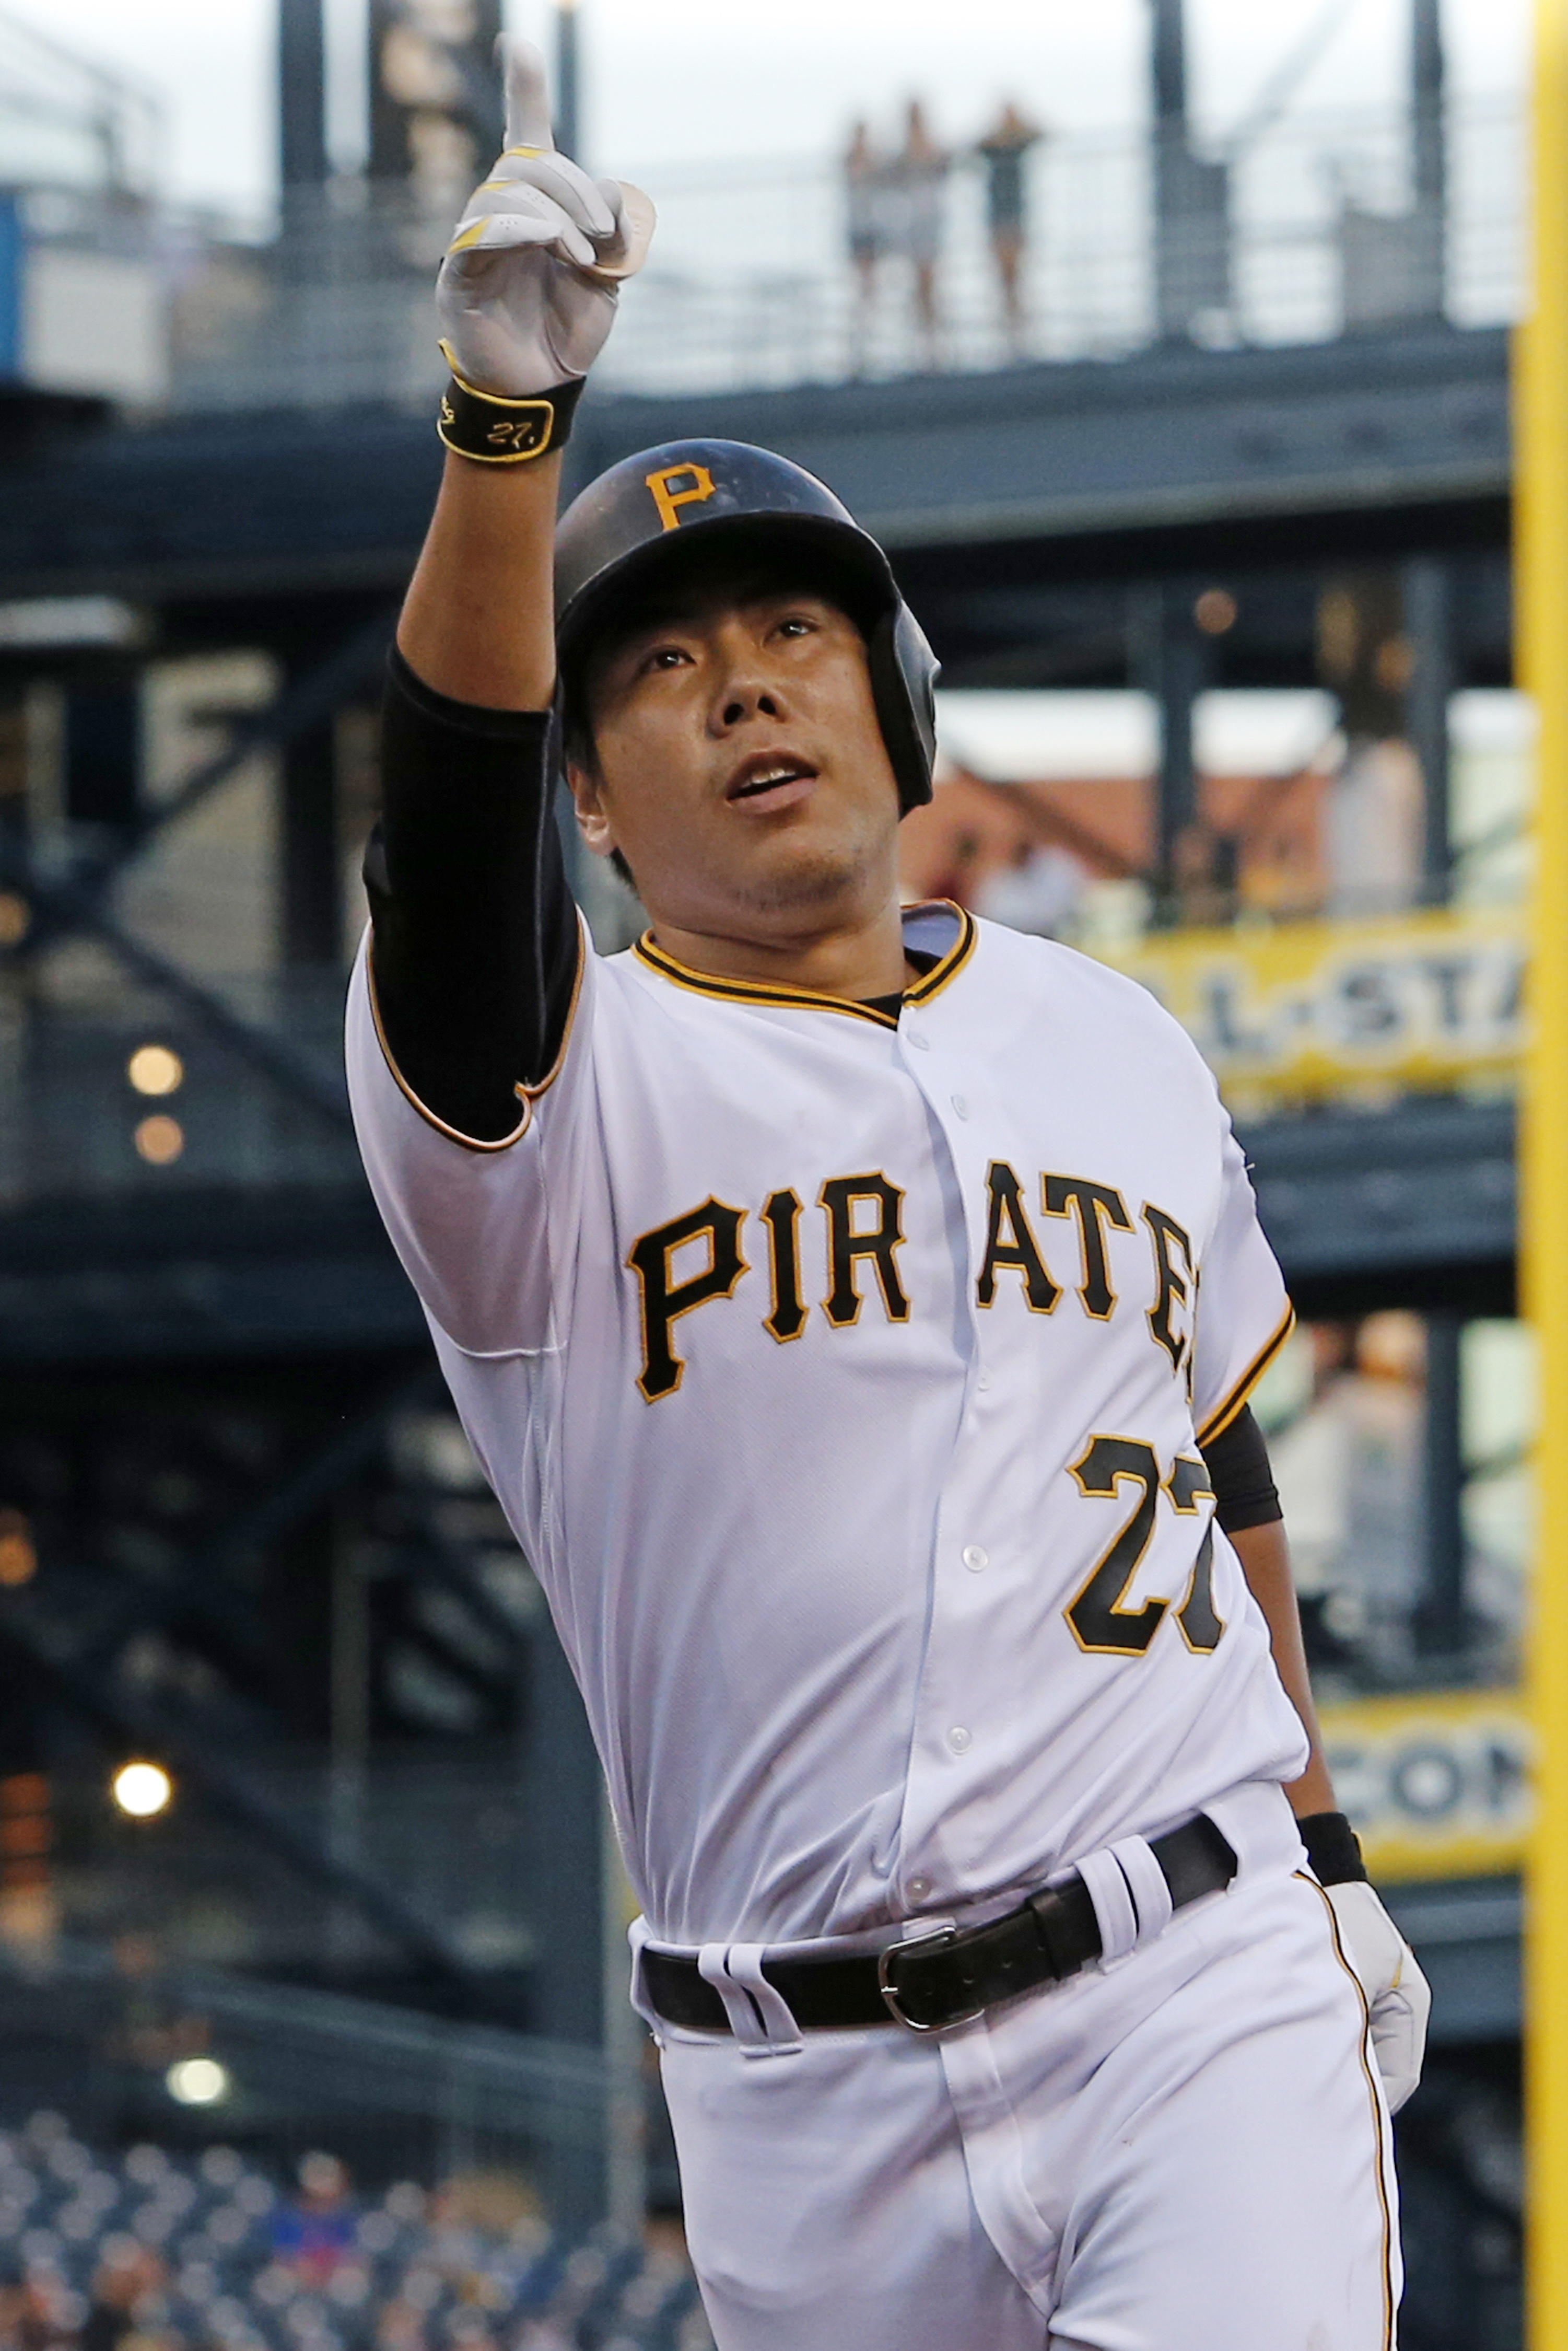 Pittsburgh Pirates' Jung Ho Kang crosses home plate after hitting a solo home run off Los Angeles Dodgers starting pitcher Nick Tepesch during the third inning of a baseball game in Pittsburgh, Friday, June 24, 2016. (AP Photo/Gene J. Puskar)